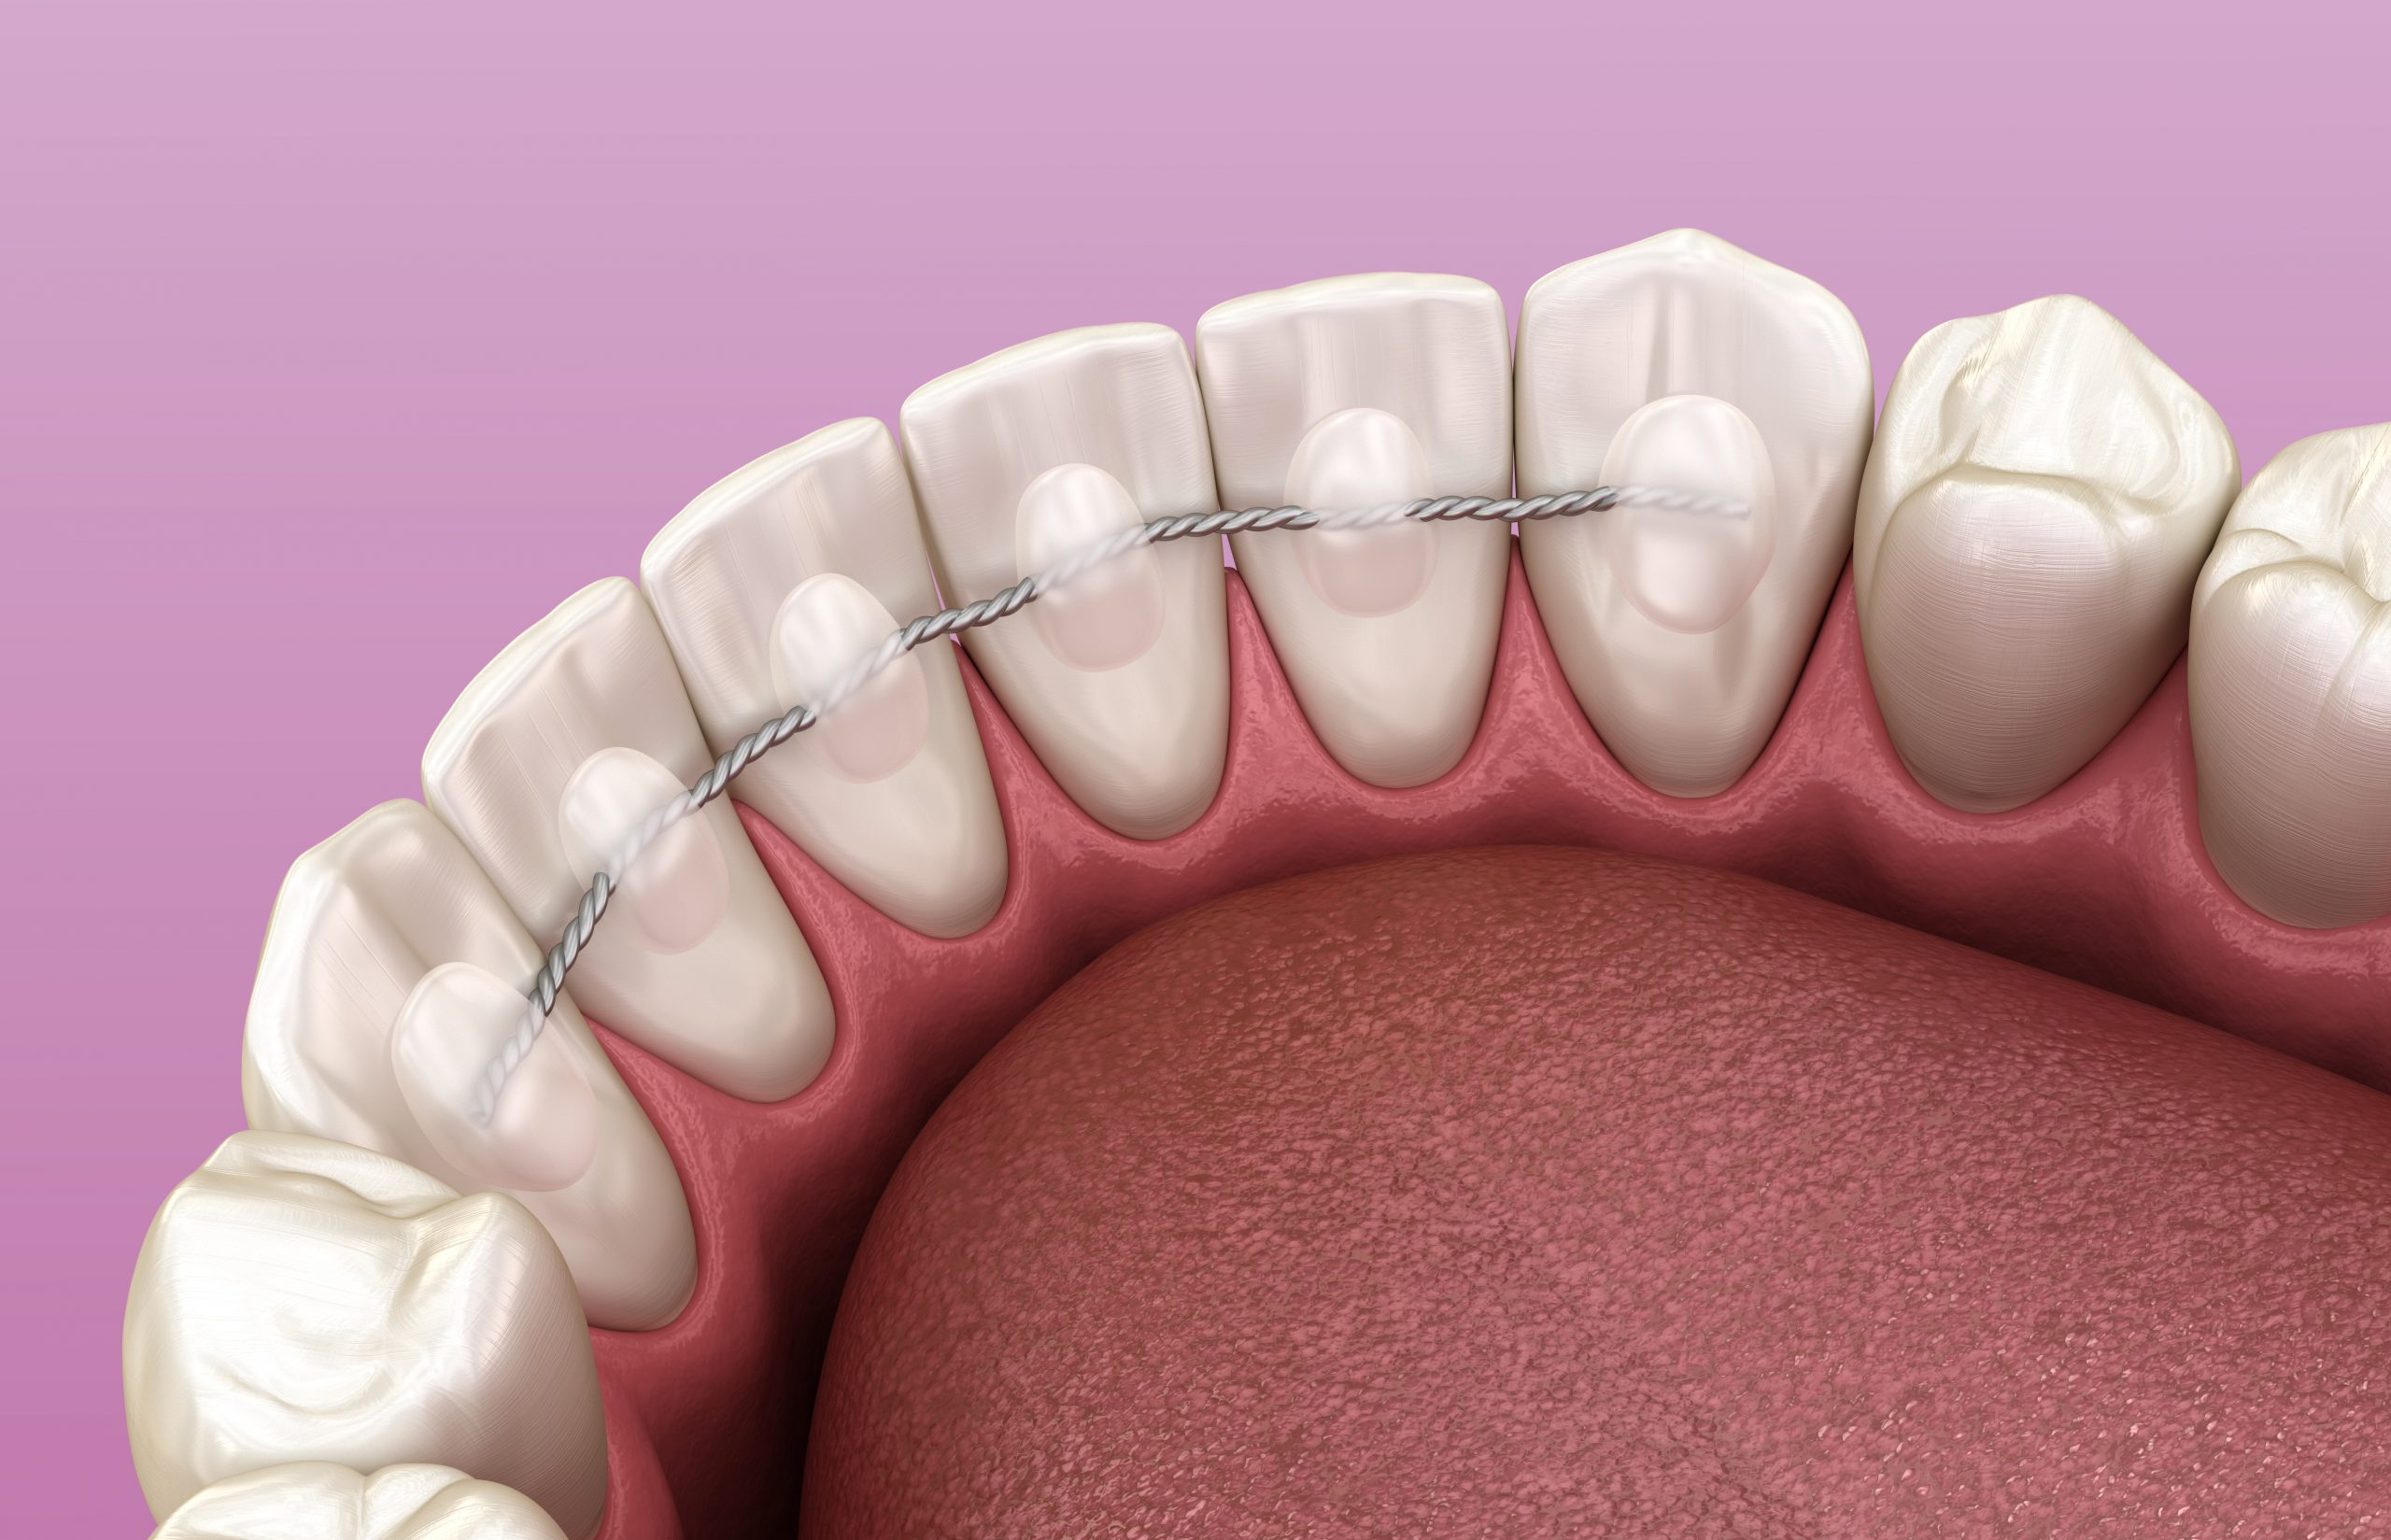 shutterstock_1486975727-scaled Where is My Orthodontic Retainer?